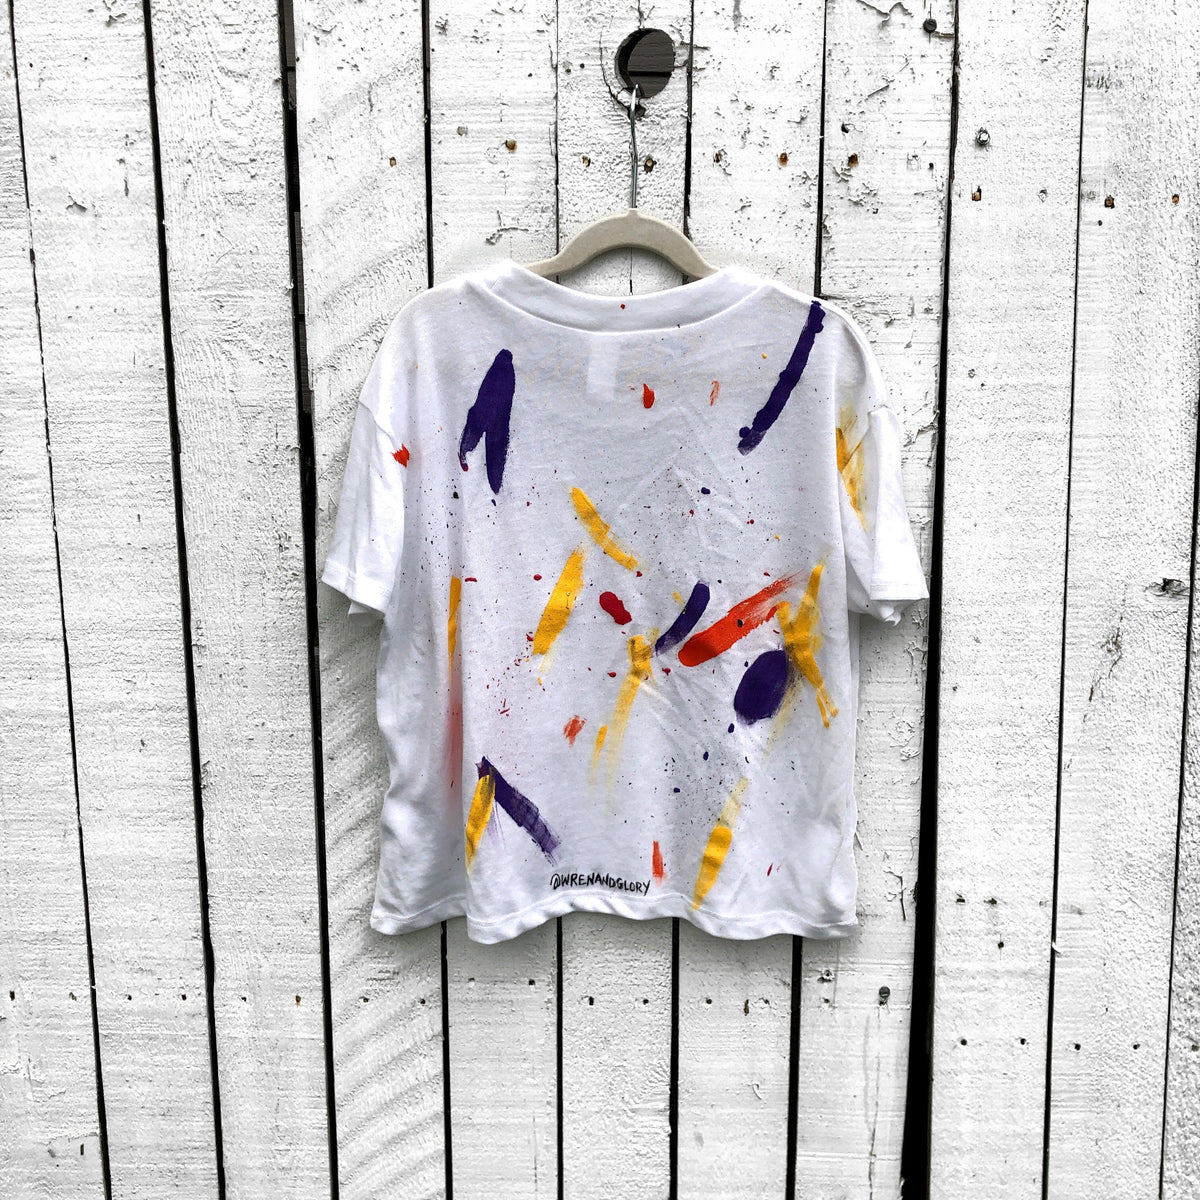 'HOT MESS' T SHIRT